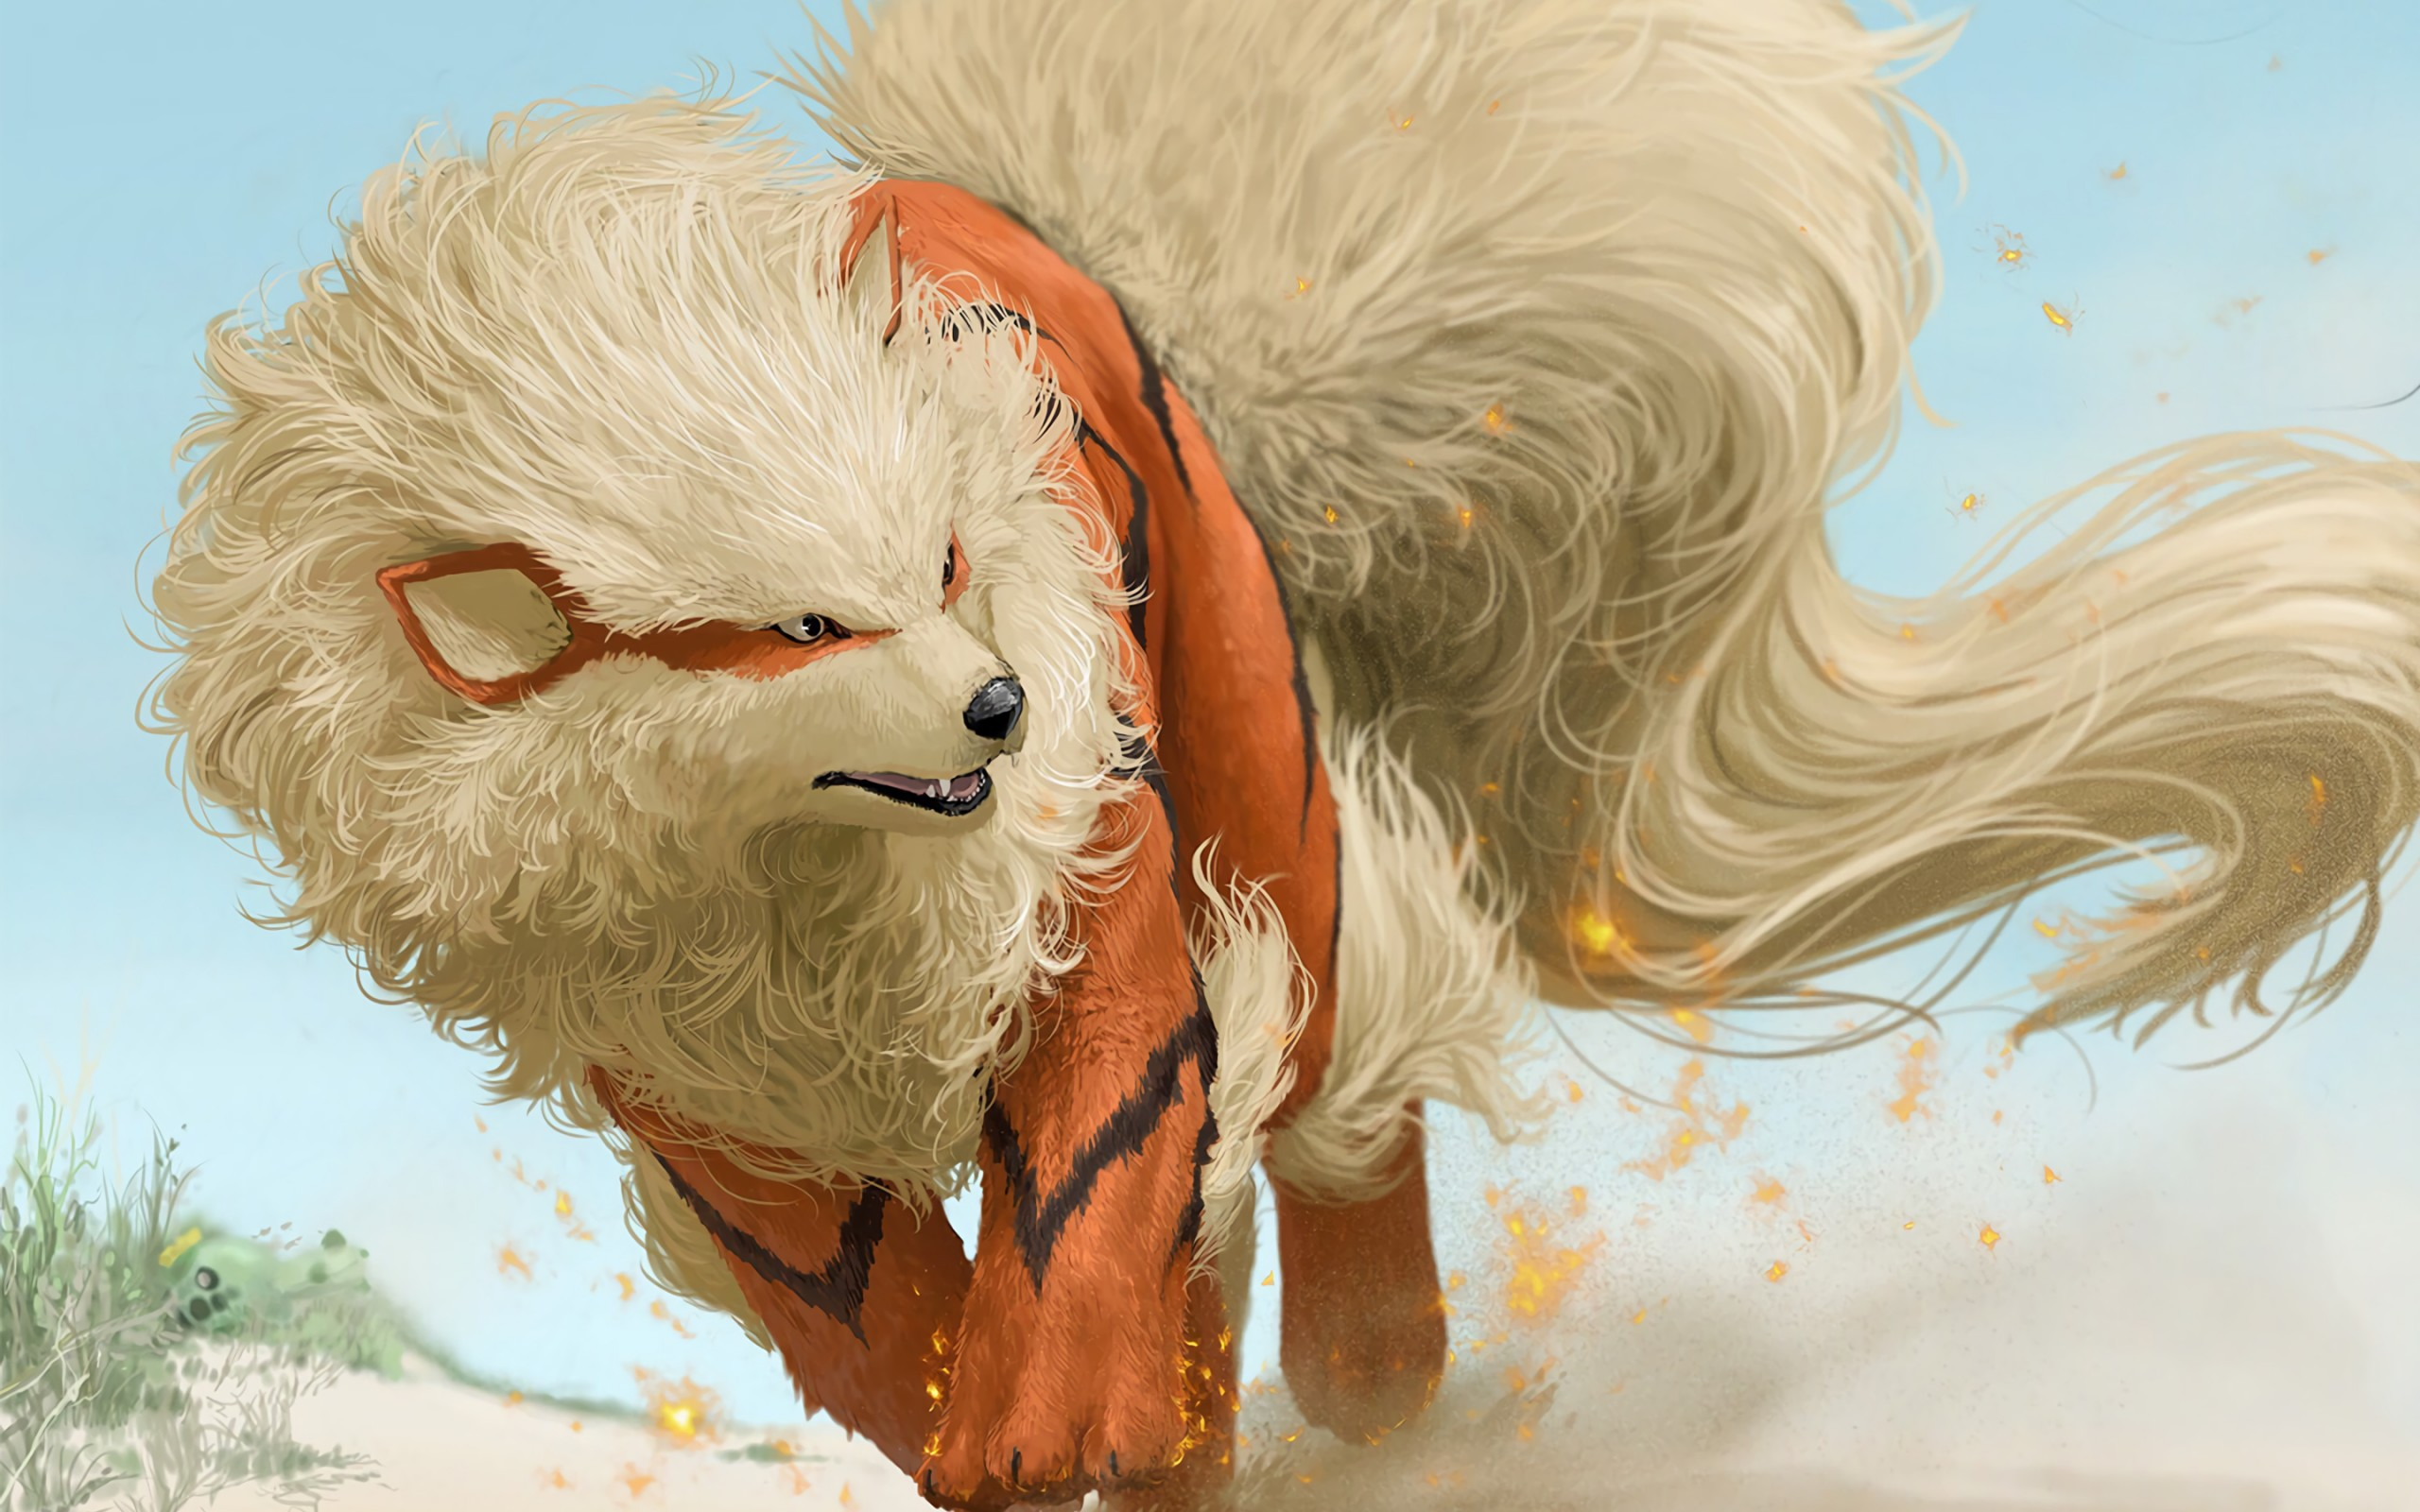 Cute Pokemon Iphone Wallpapers Arcanine Pokemon Wallpapers Hd Wallpapers Id 19816